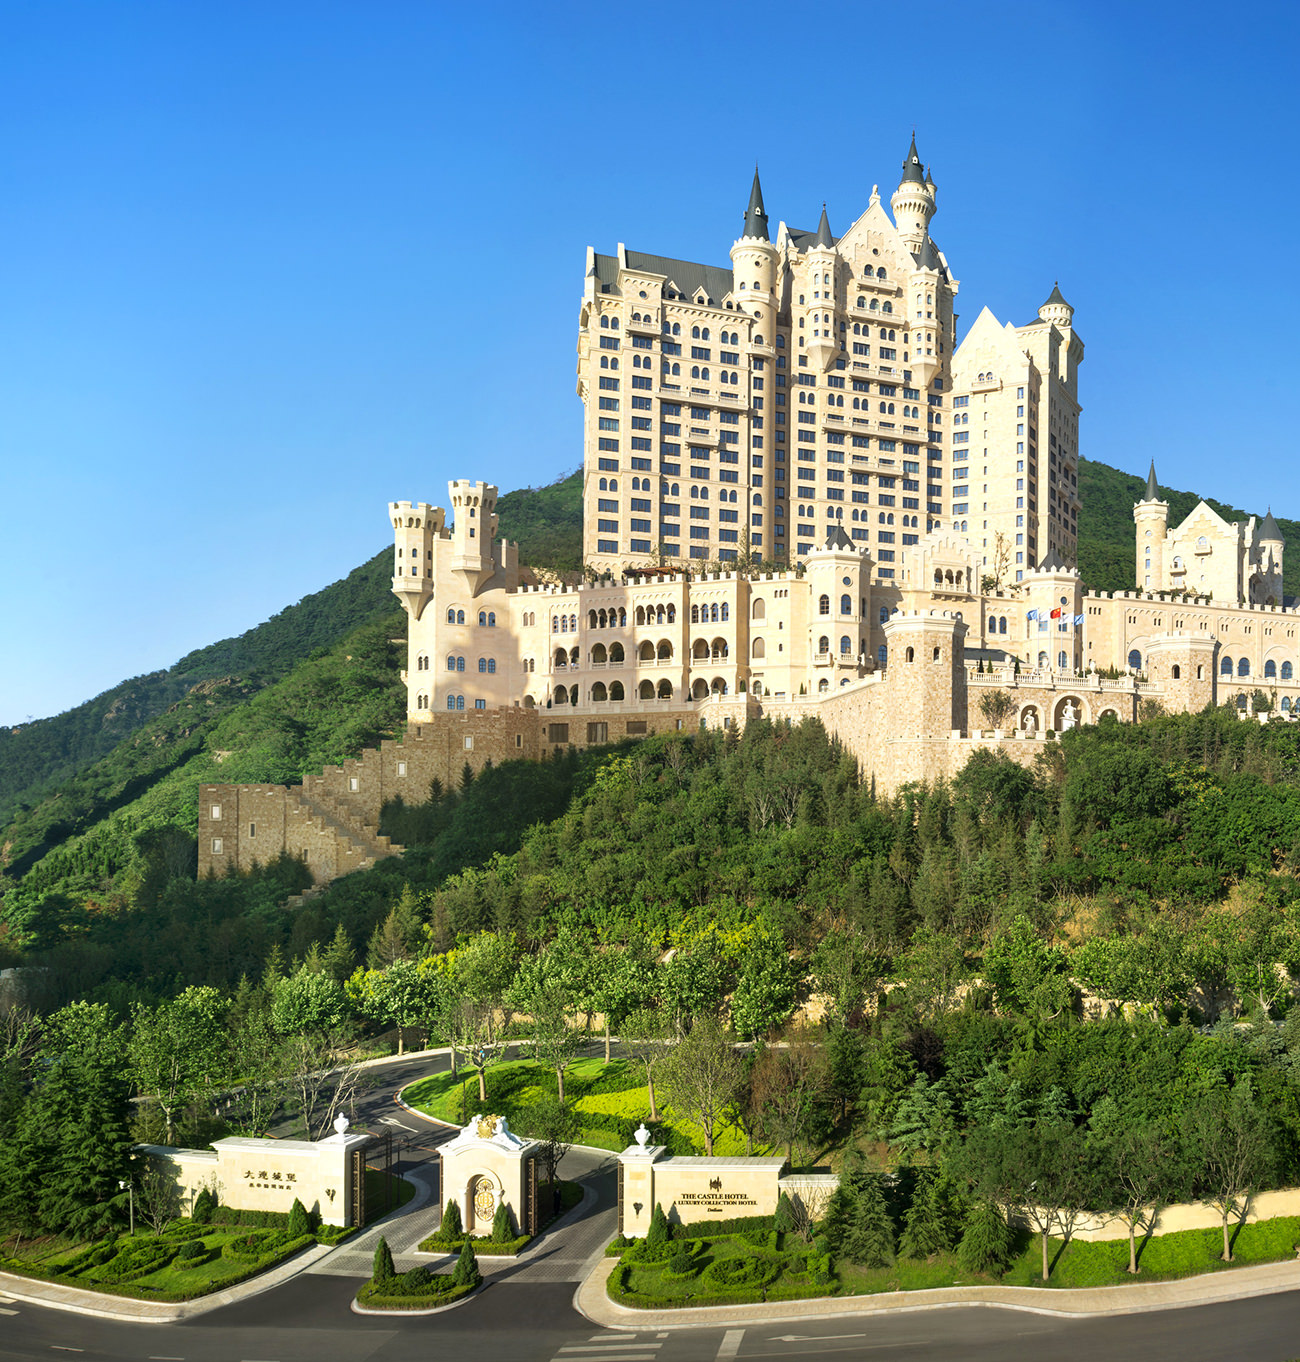 The castle hotel a luxury collection hotel dalian an for Luxury hotel collection